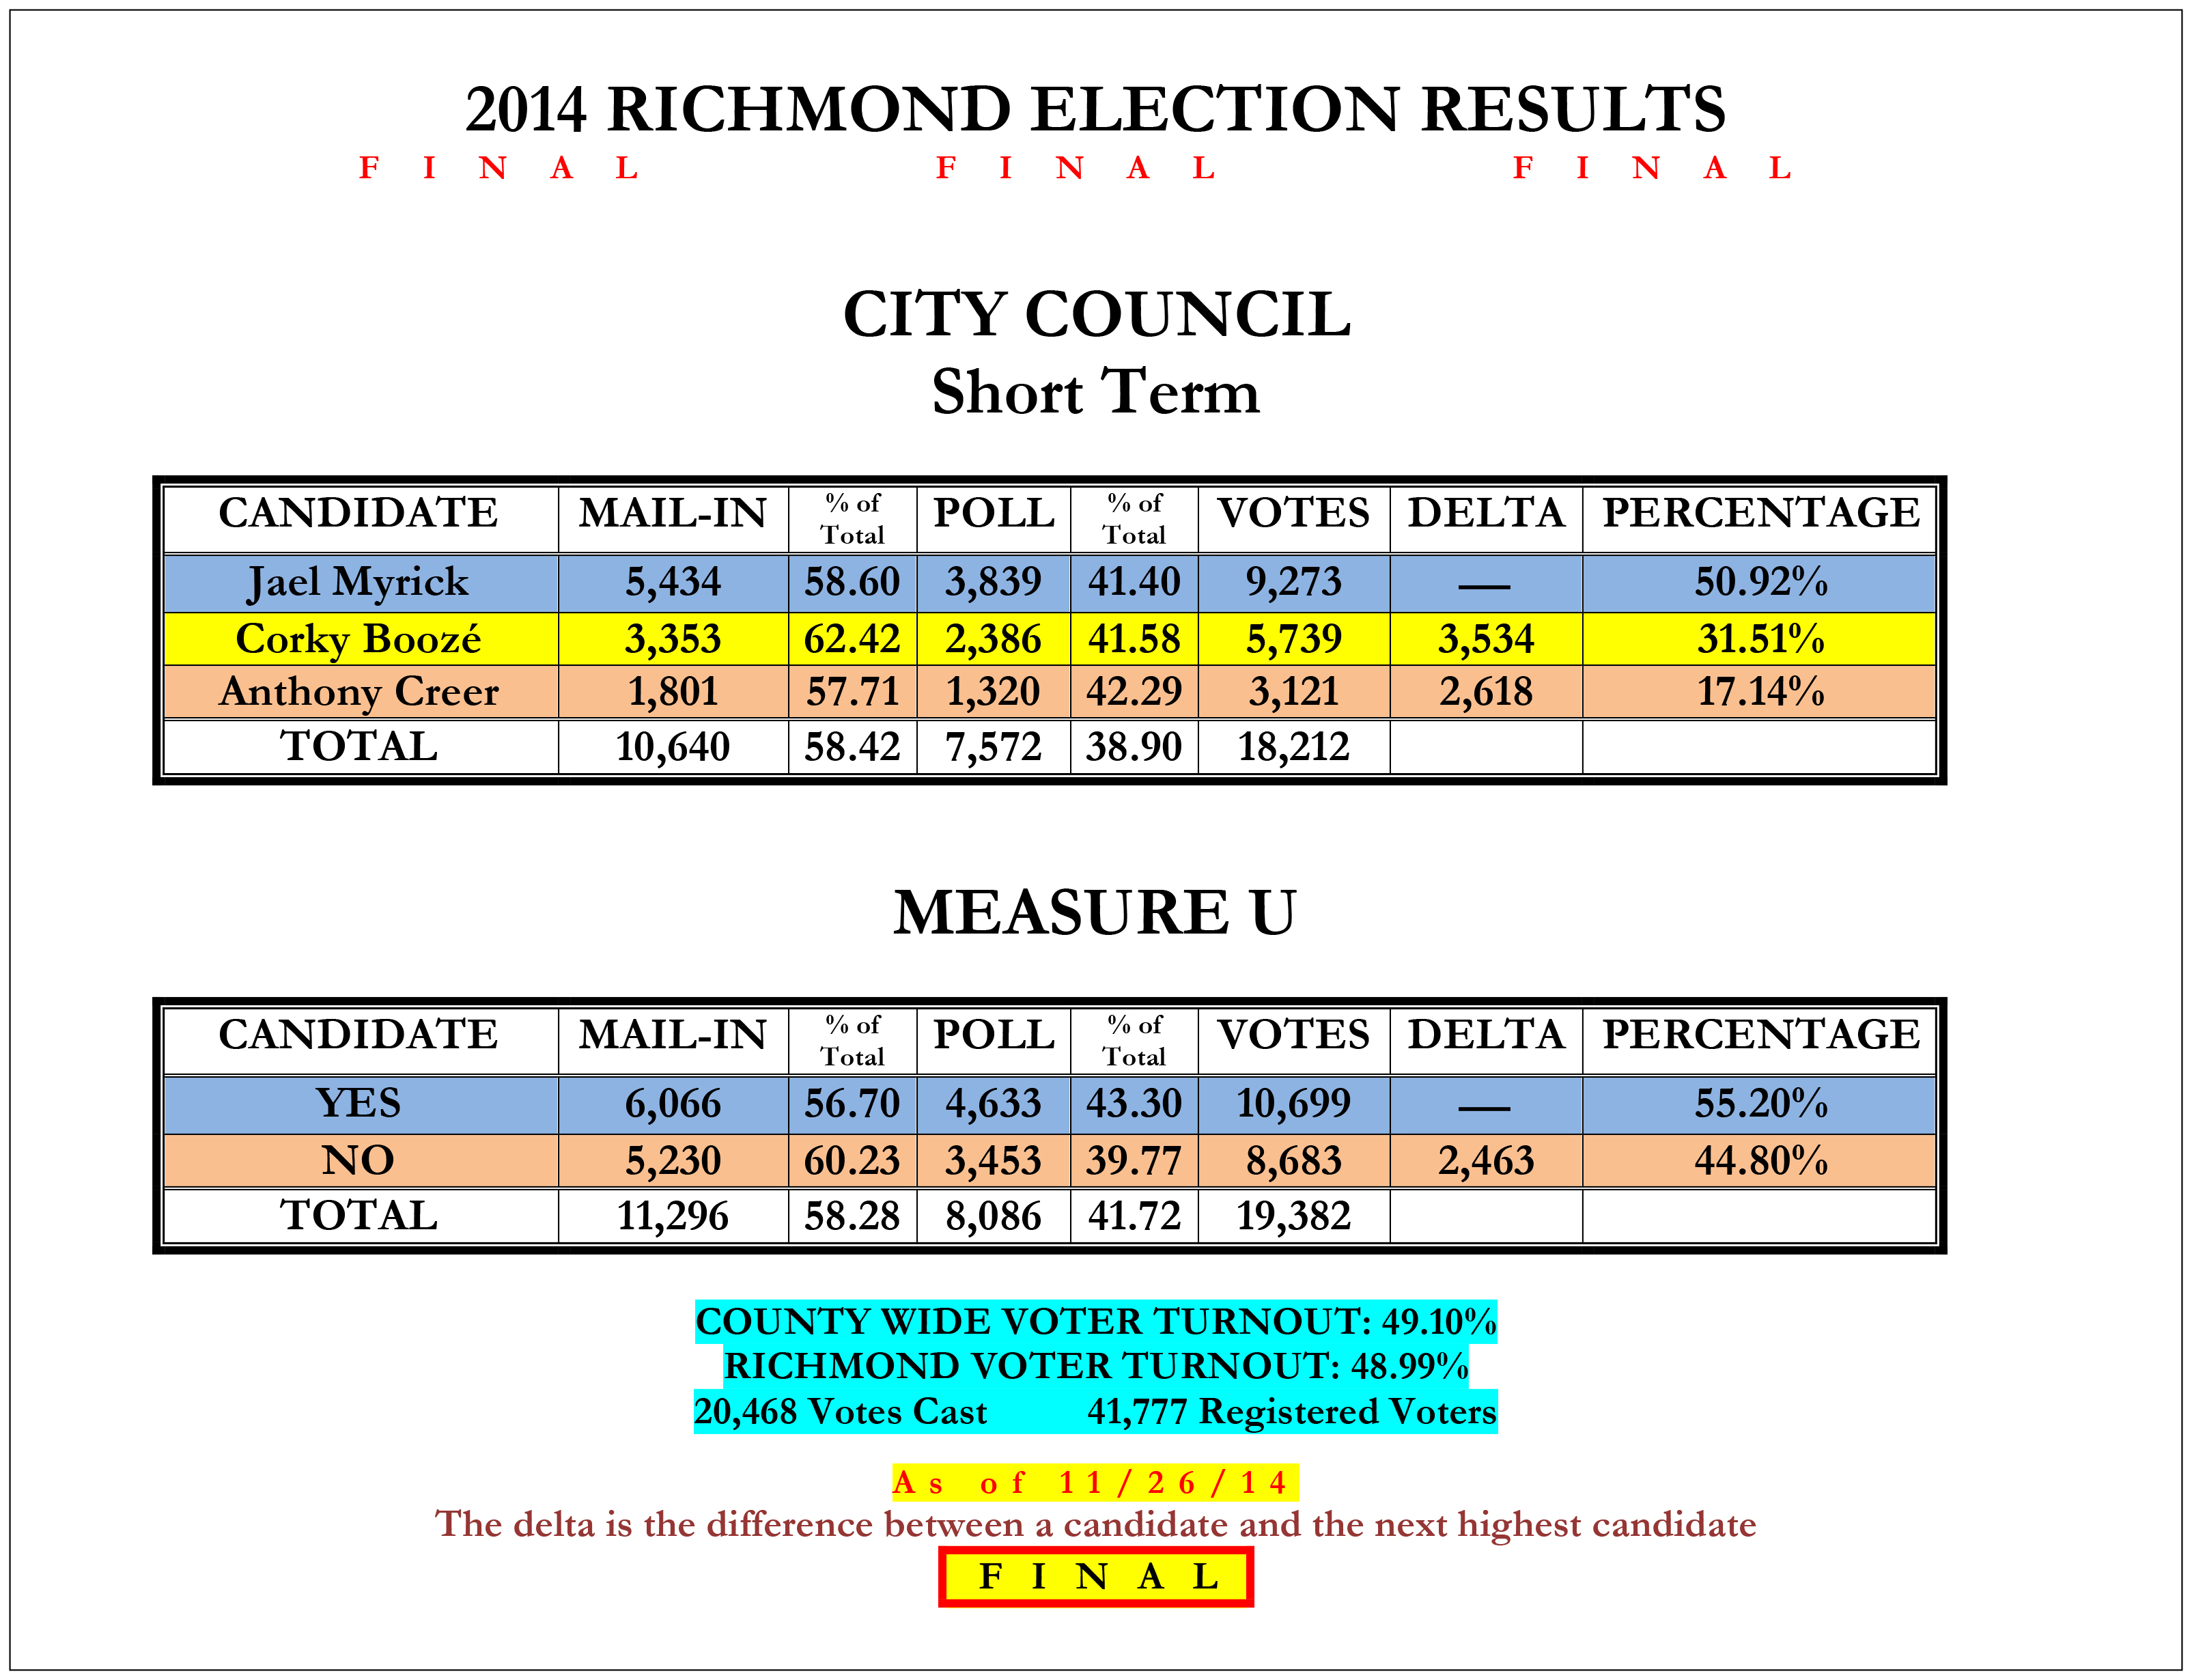 CityCouncil_and_U14_Richmond_Election_Results-4_11-26-14_FINAL-2.jpg